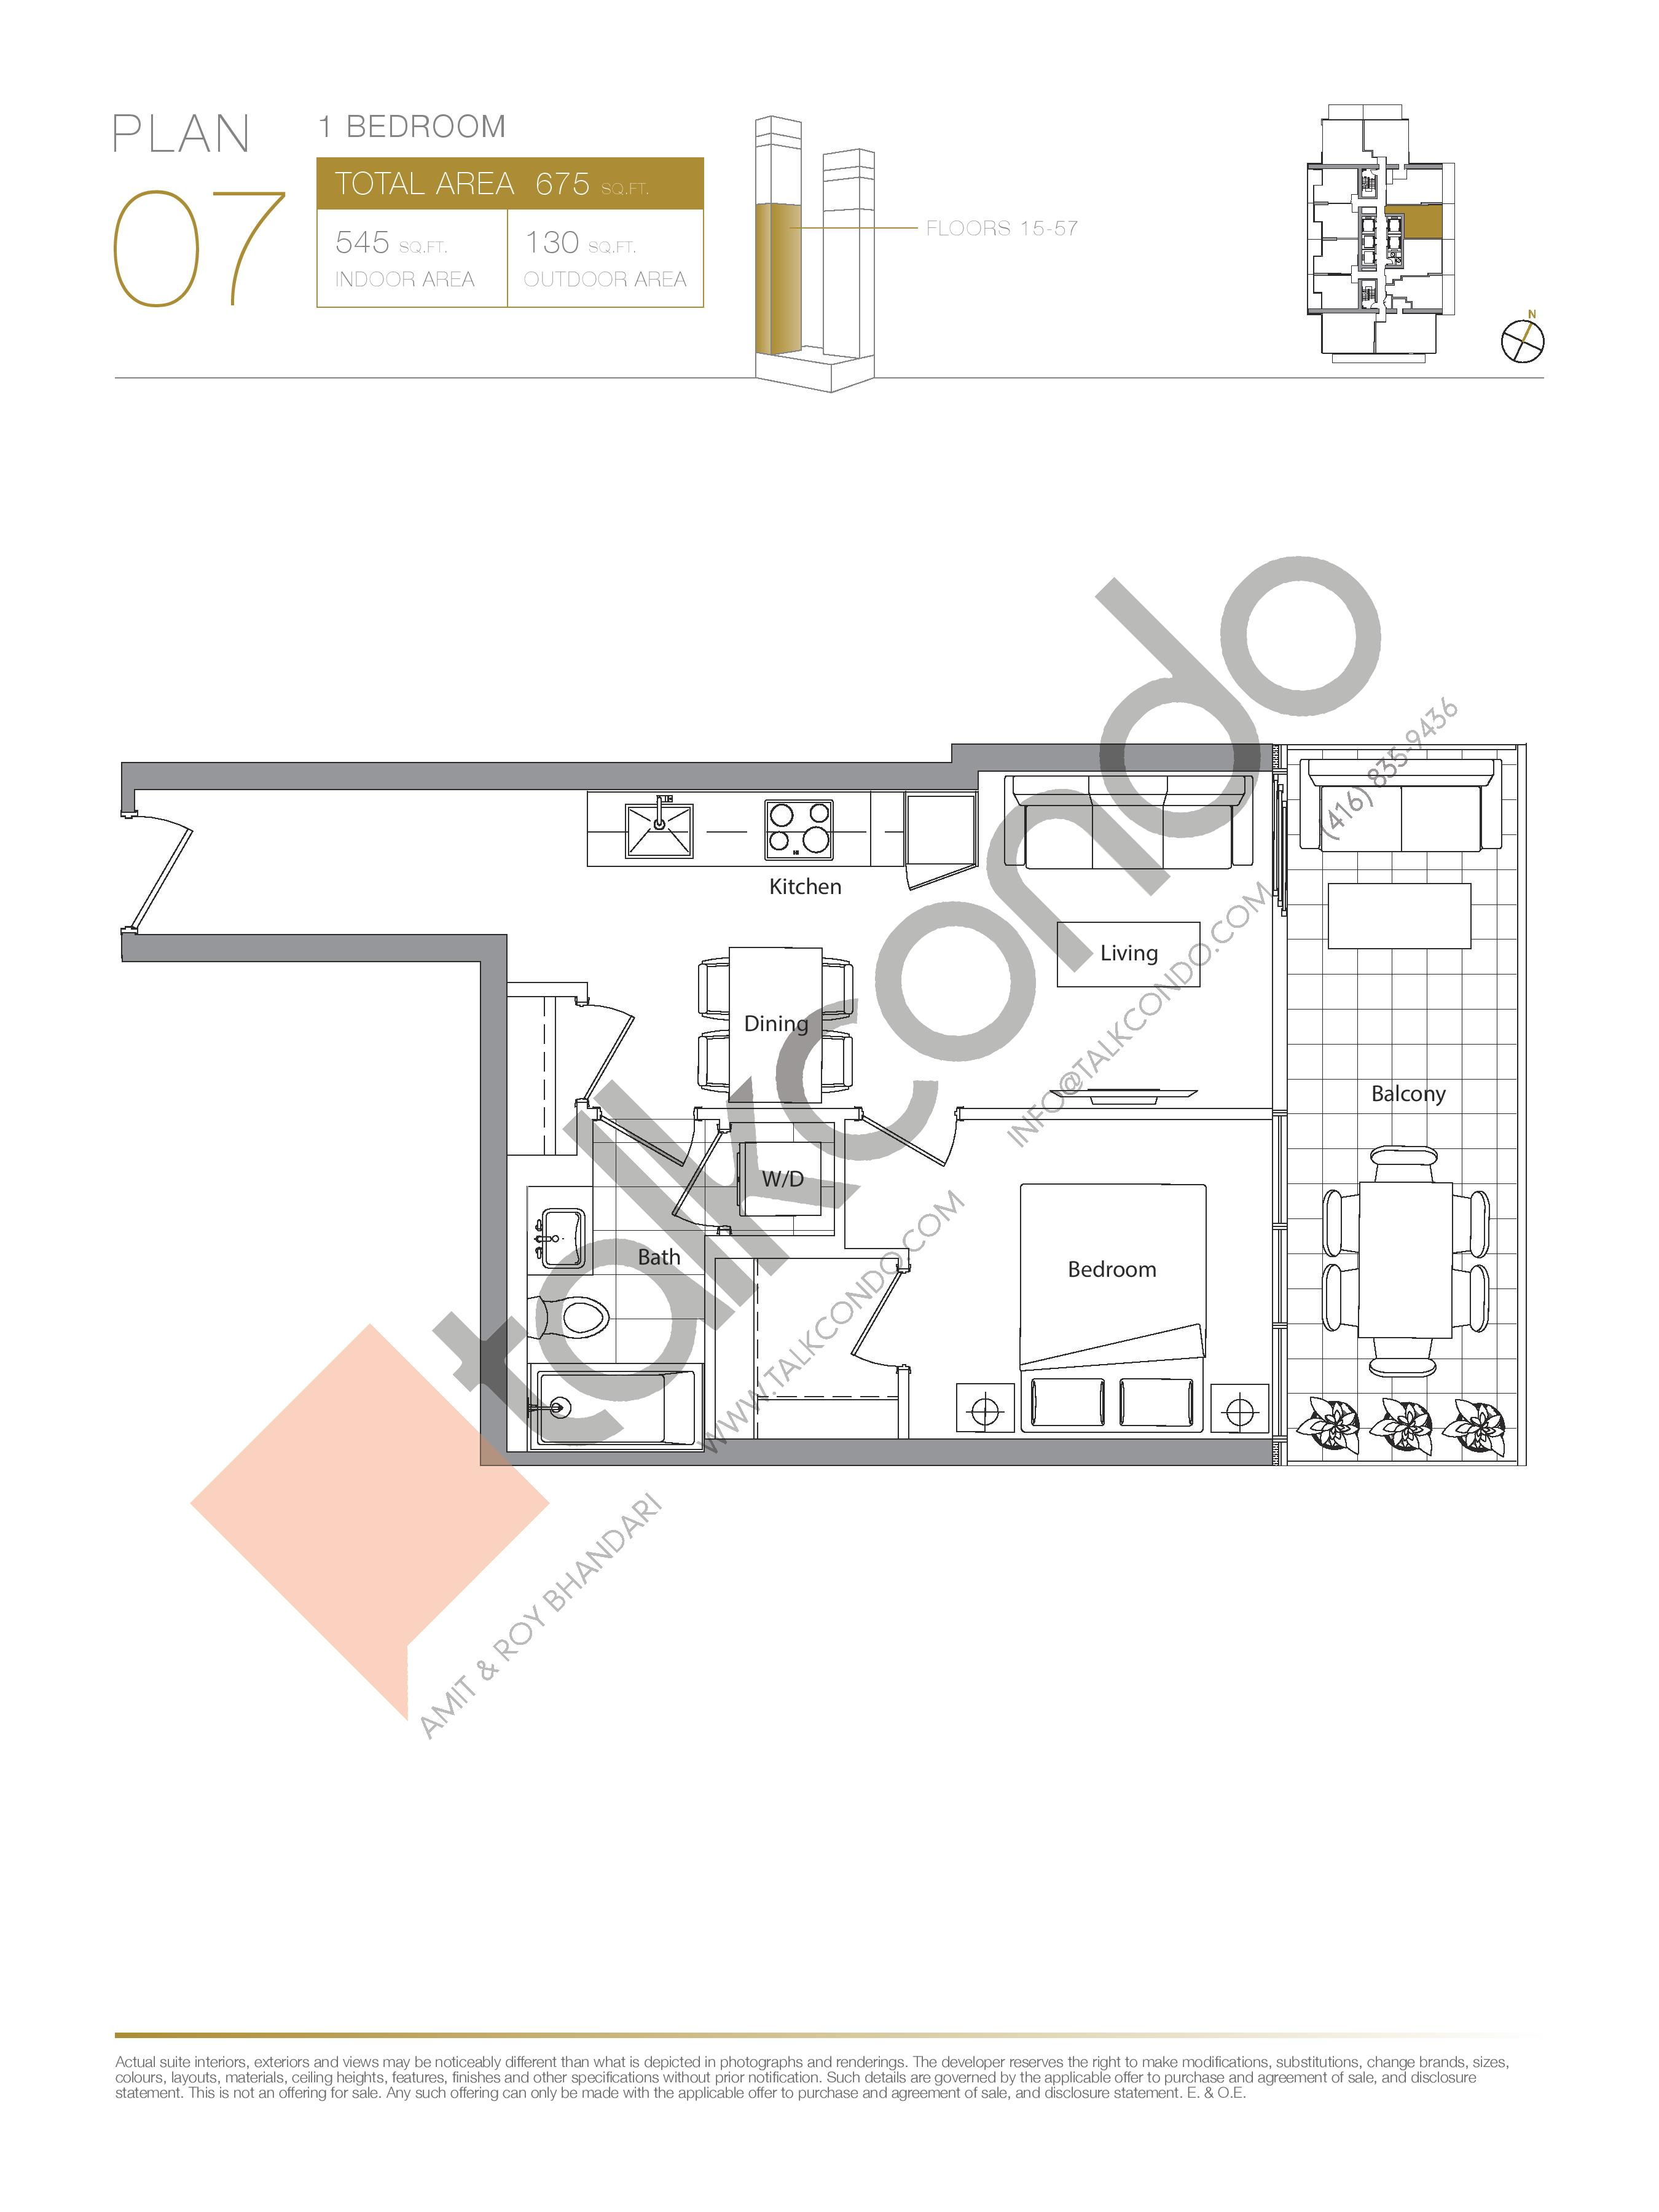 Plan 07 (New Release) Lower Floor Plan at Concord Canada House Condos - 545 sq.ft